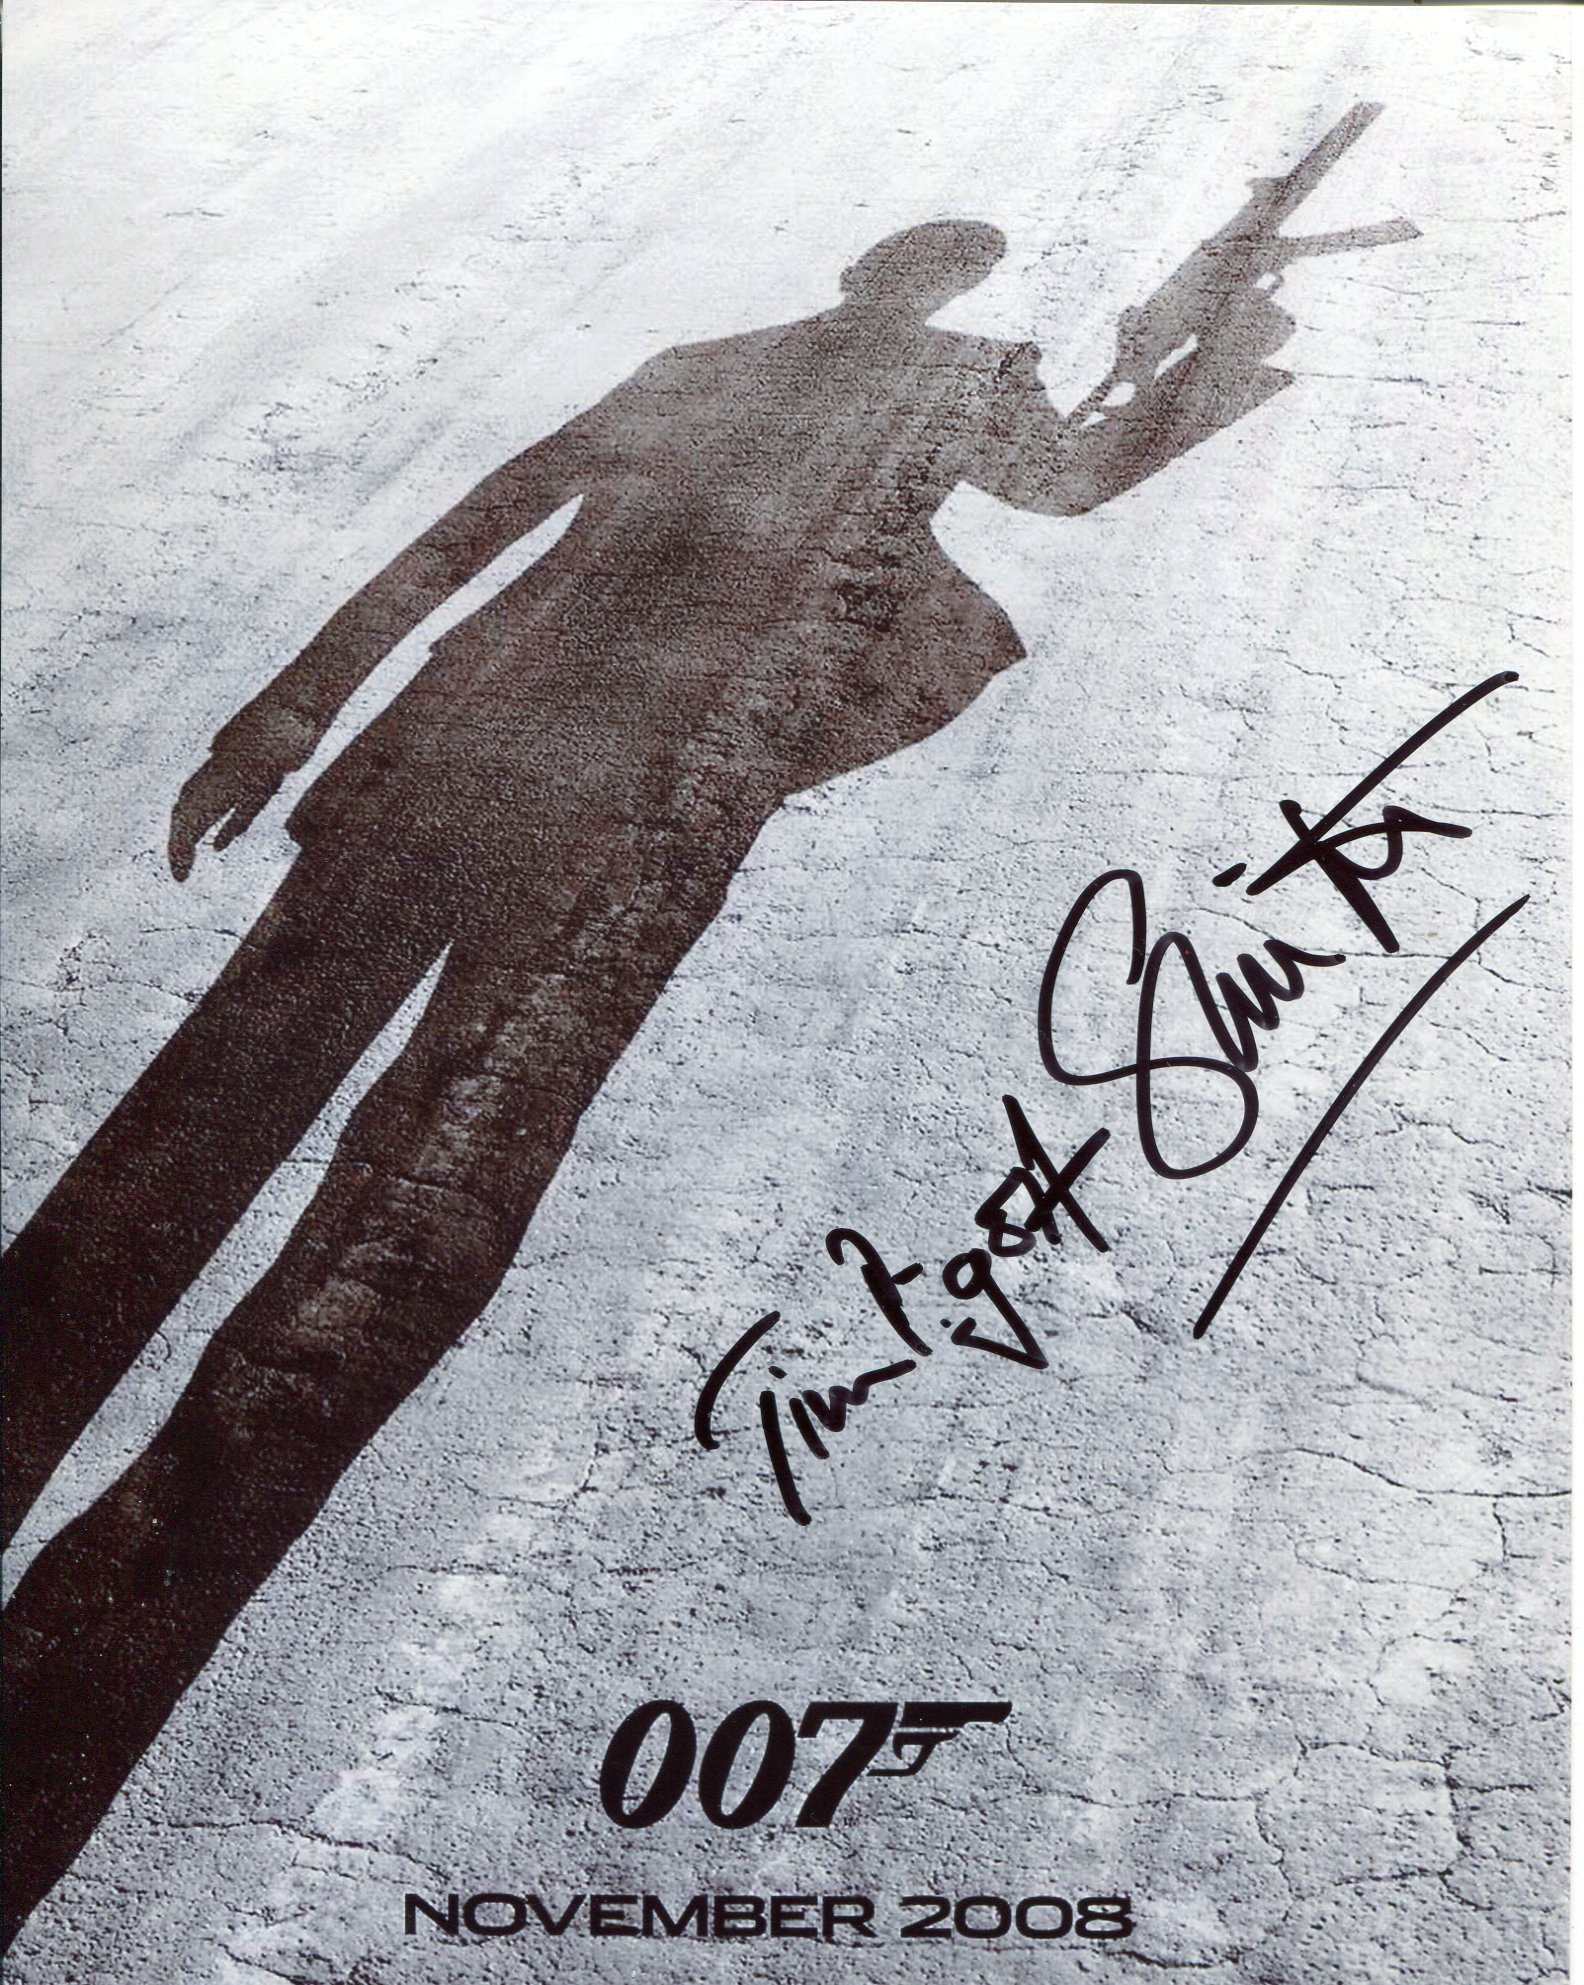 007 James Bond movie Quantum of Solace 8x10 photo signed by actor Tim Pigott Smith who played the